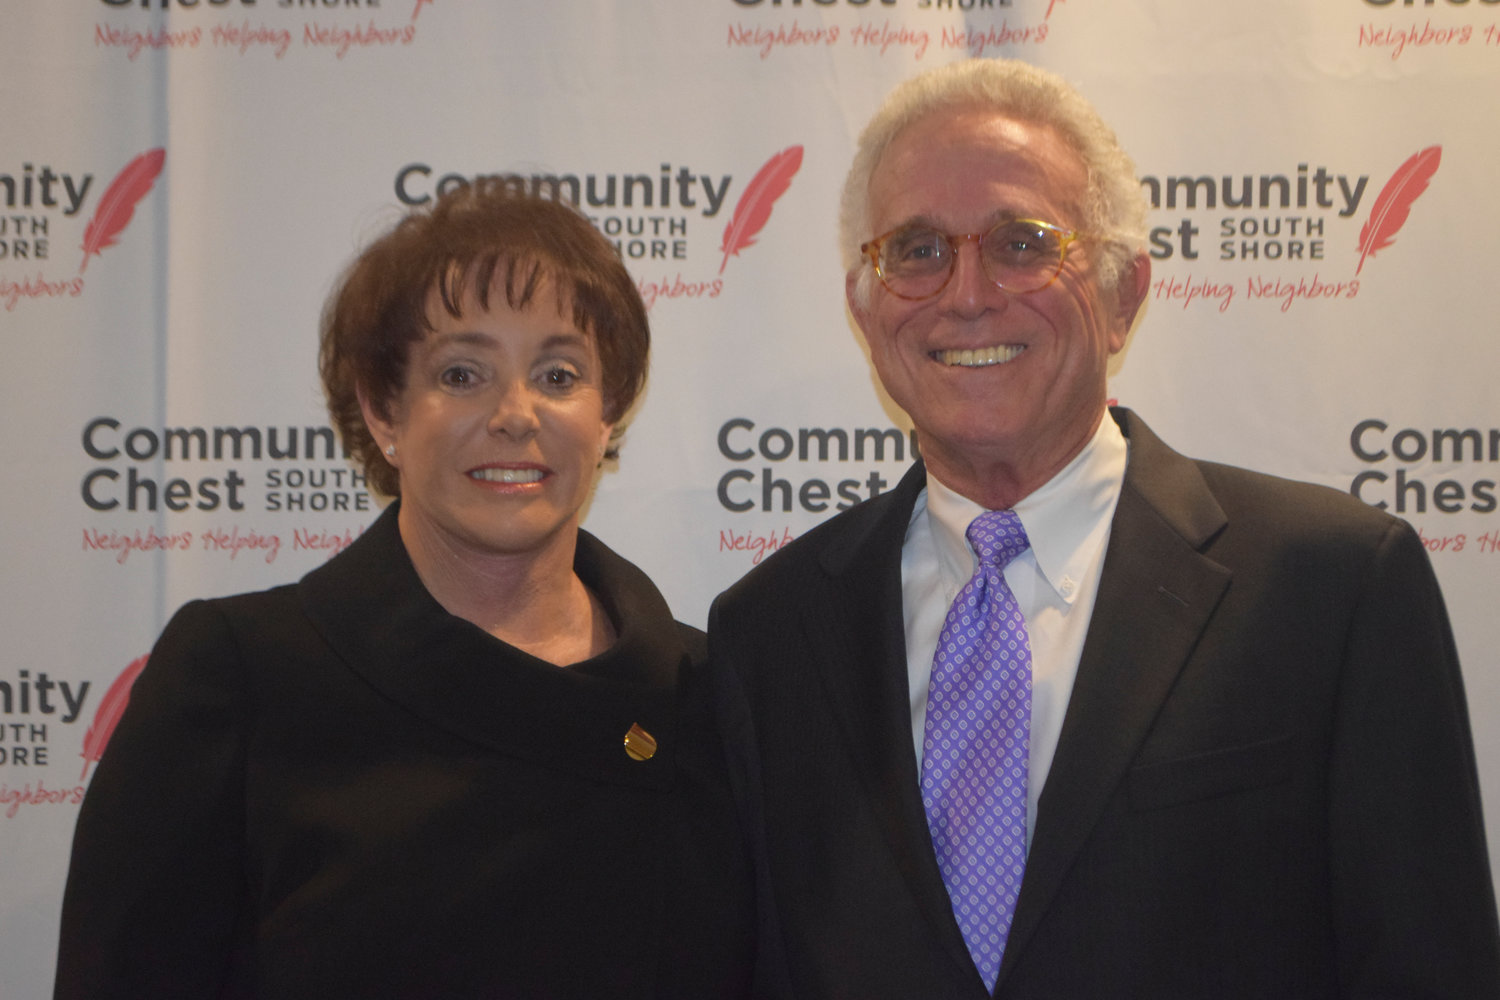 Woodmere residents Diane and Michael Rattner were the honorees at the Community Chest South Shore's Neighbors in Need fundraiser on Nov. 1.